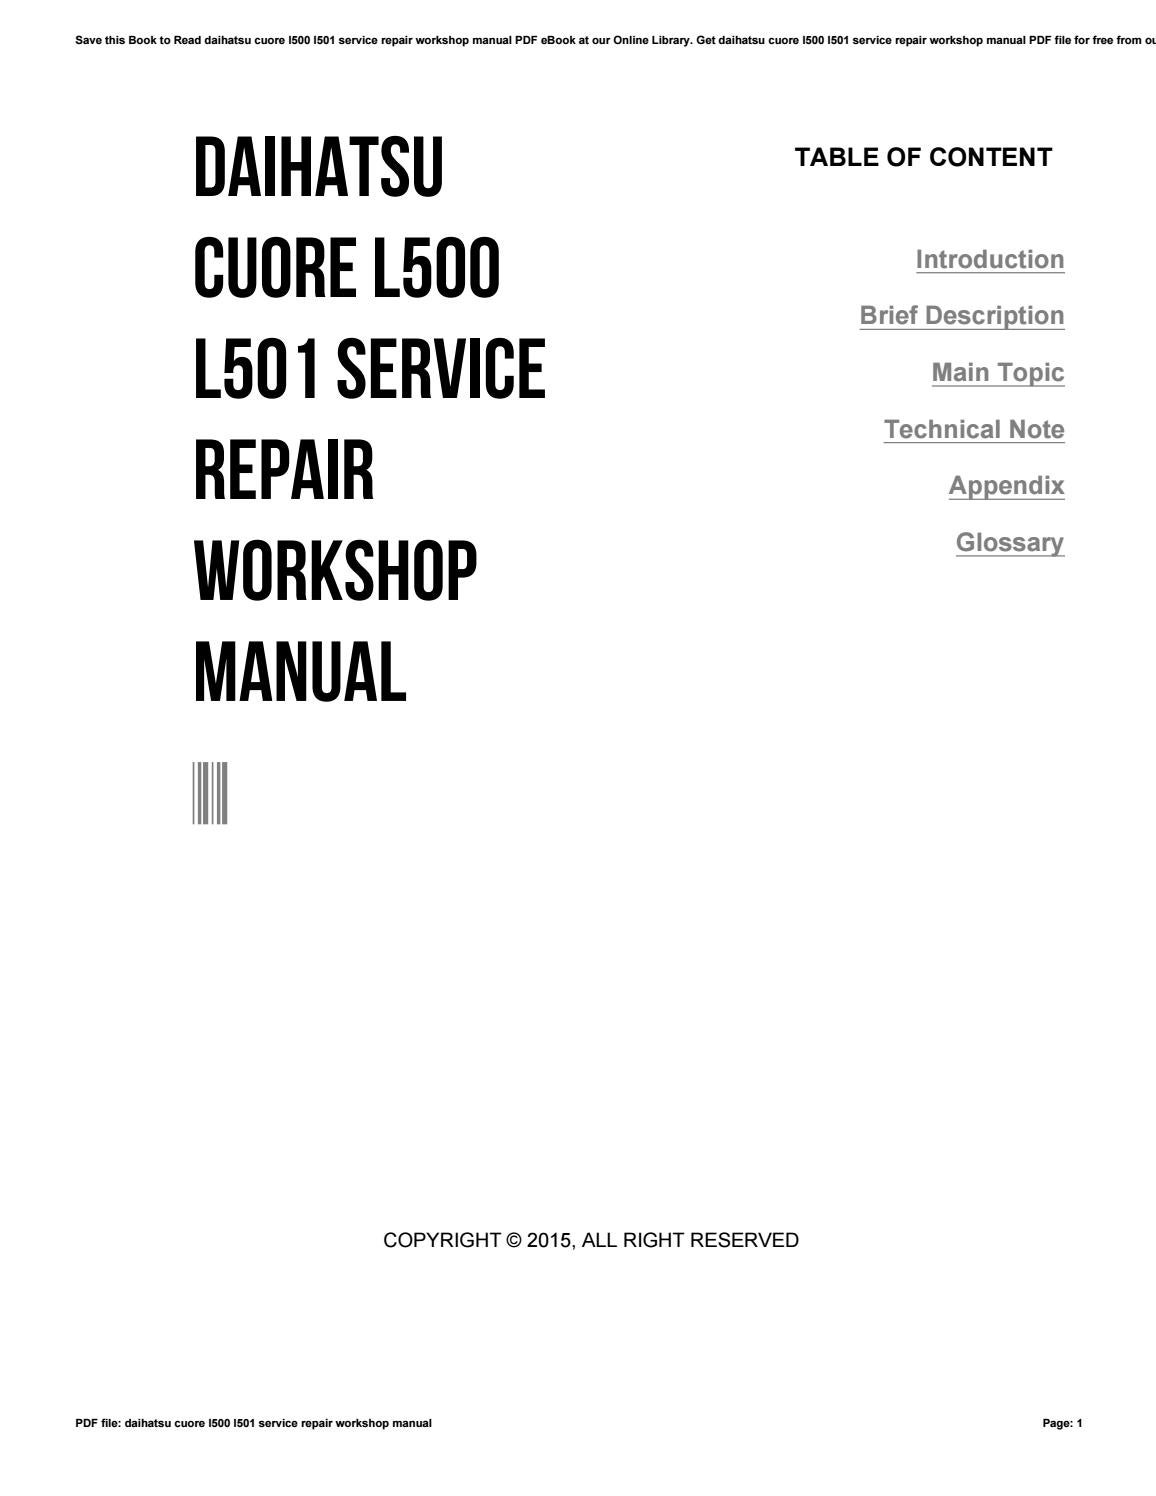 Daihatsu cuore l500 l501 service repair workshop manual by